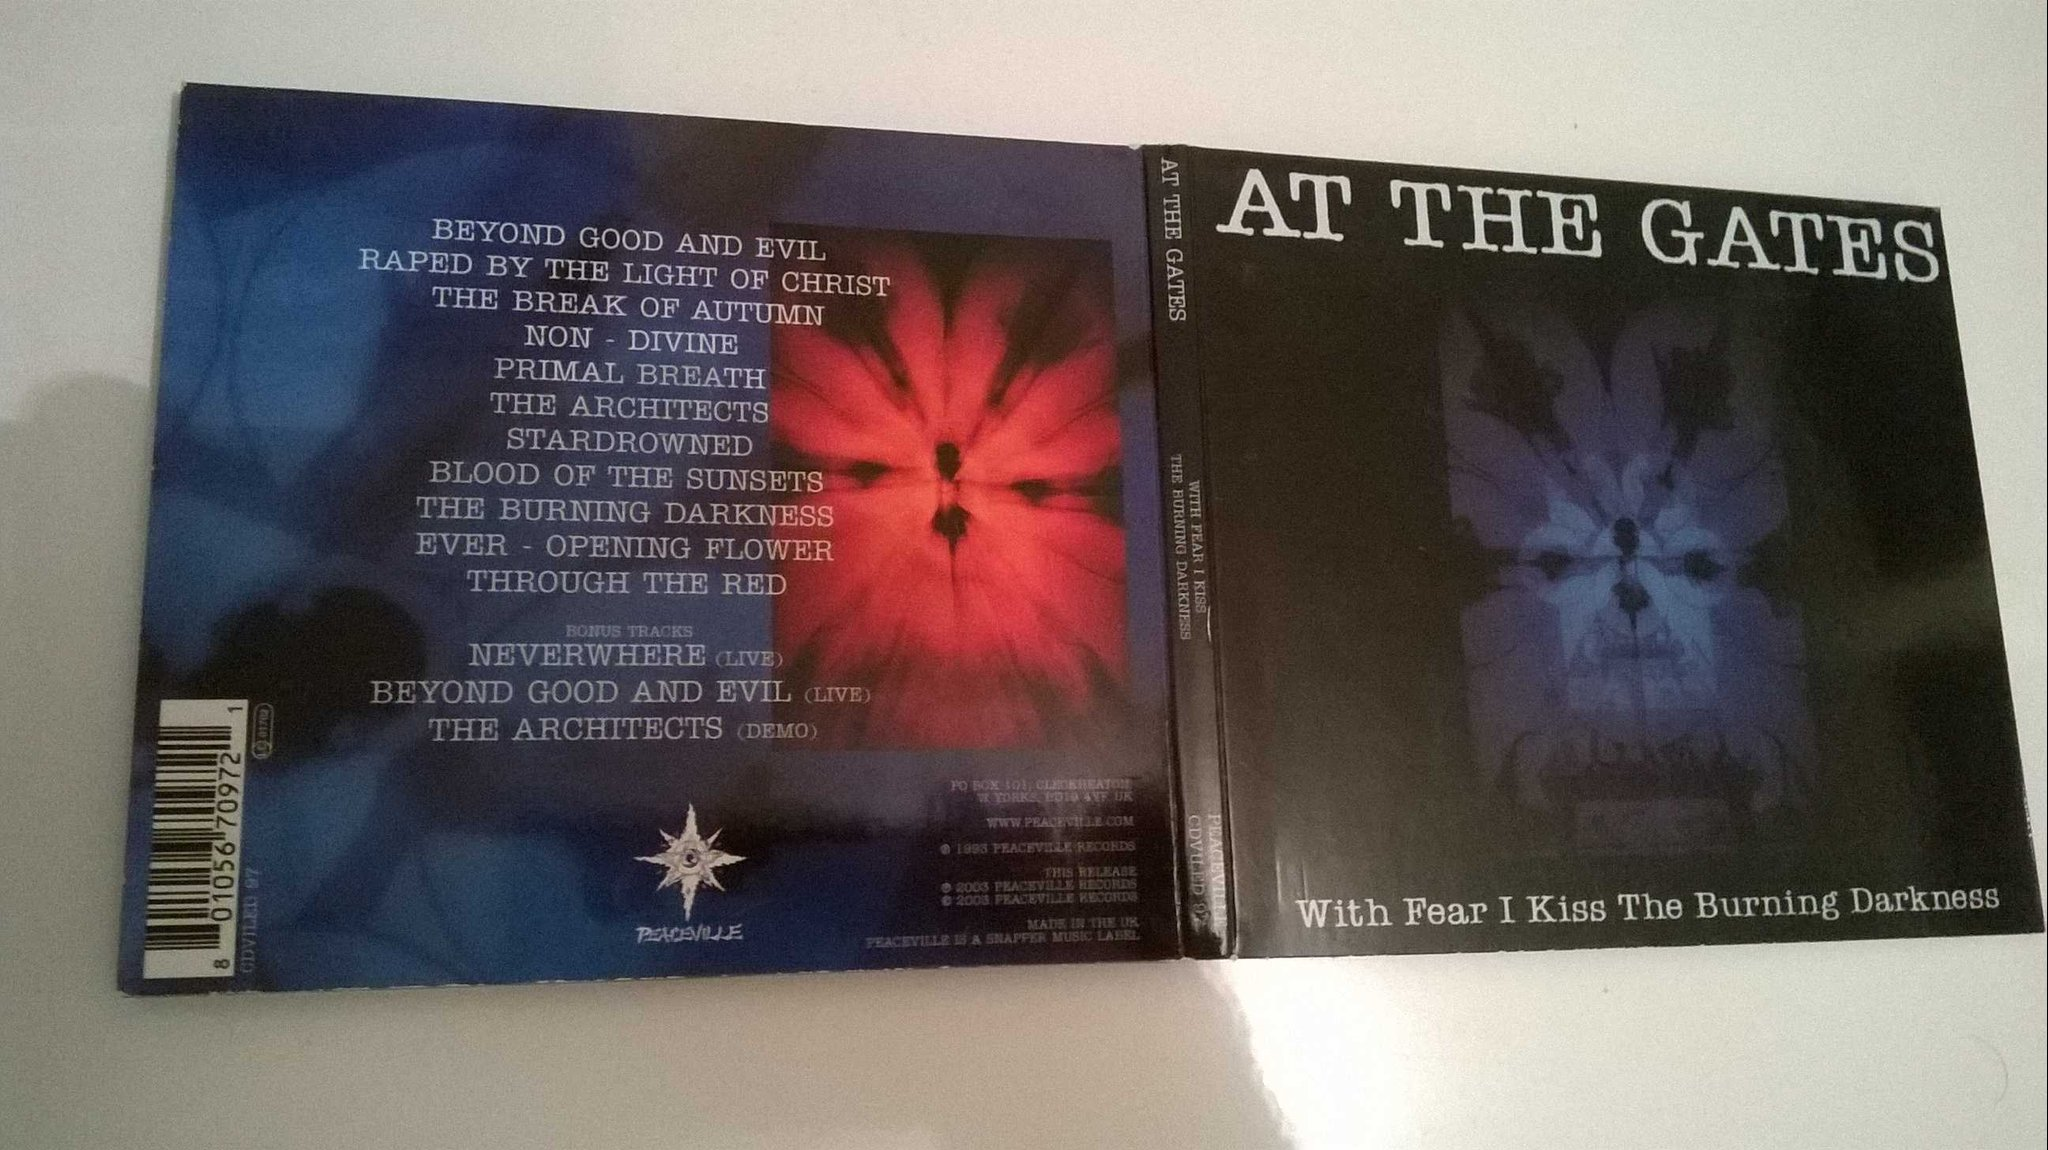 At The Gates - With Fear I Kiss The Burning Darkness, CD